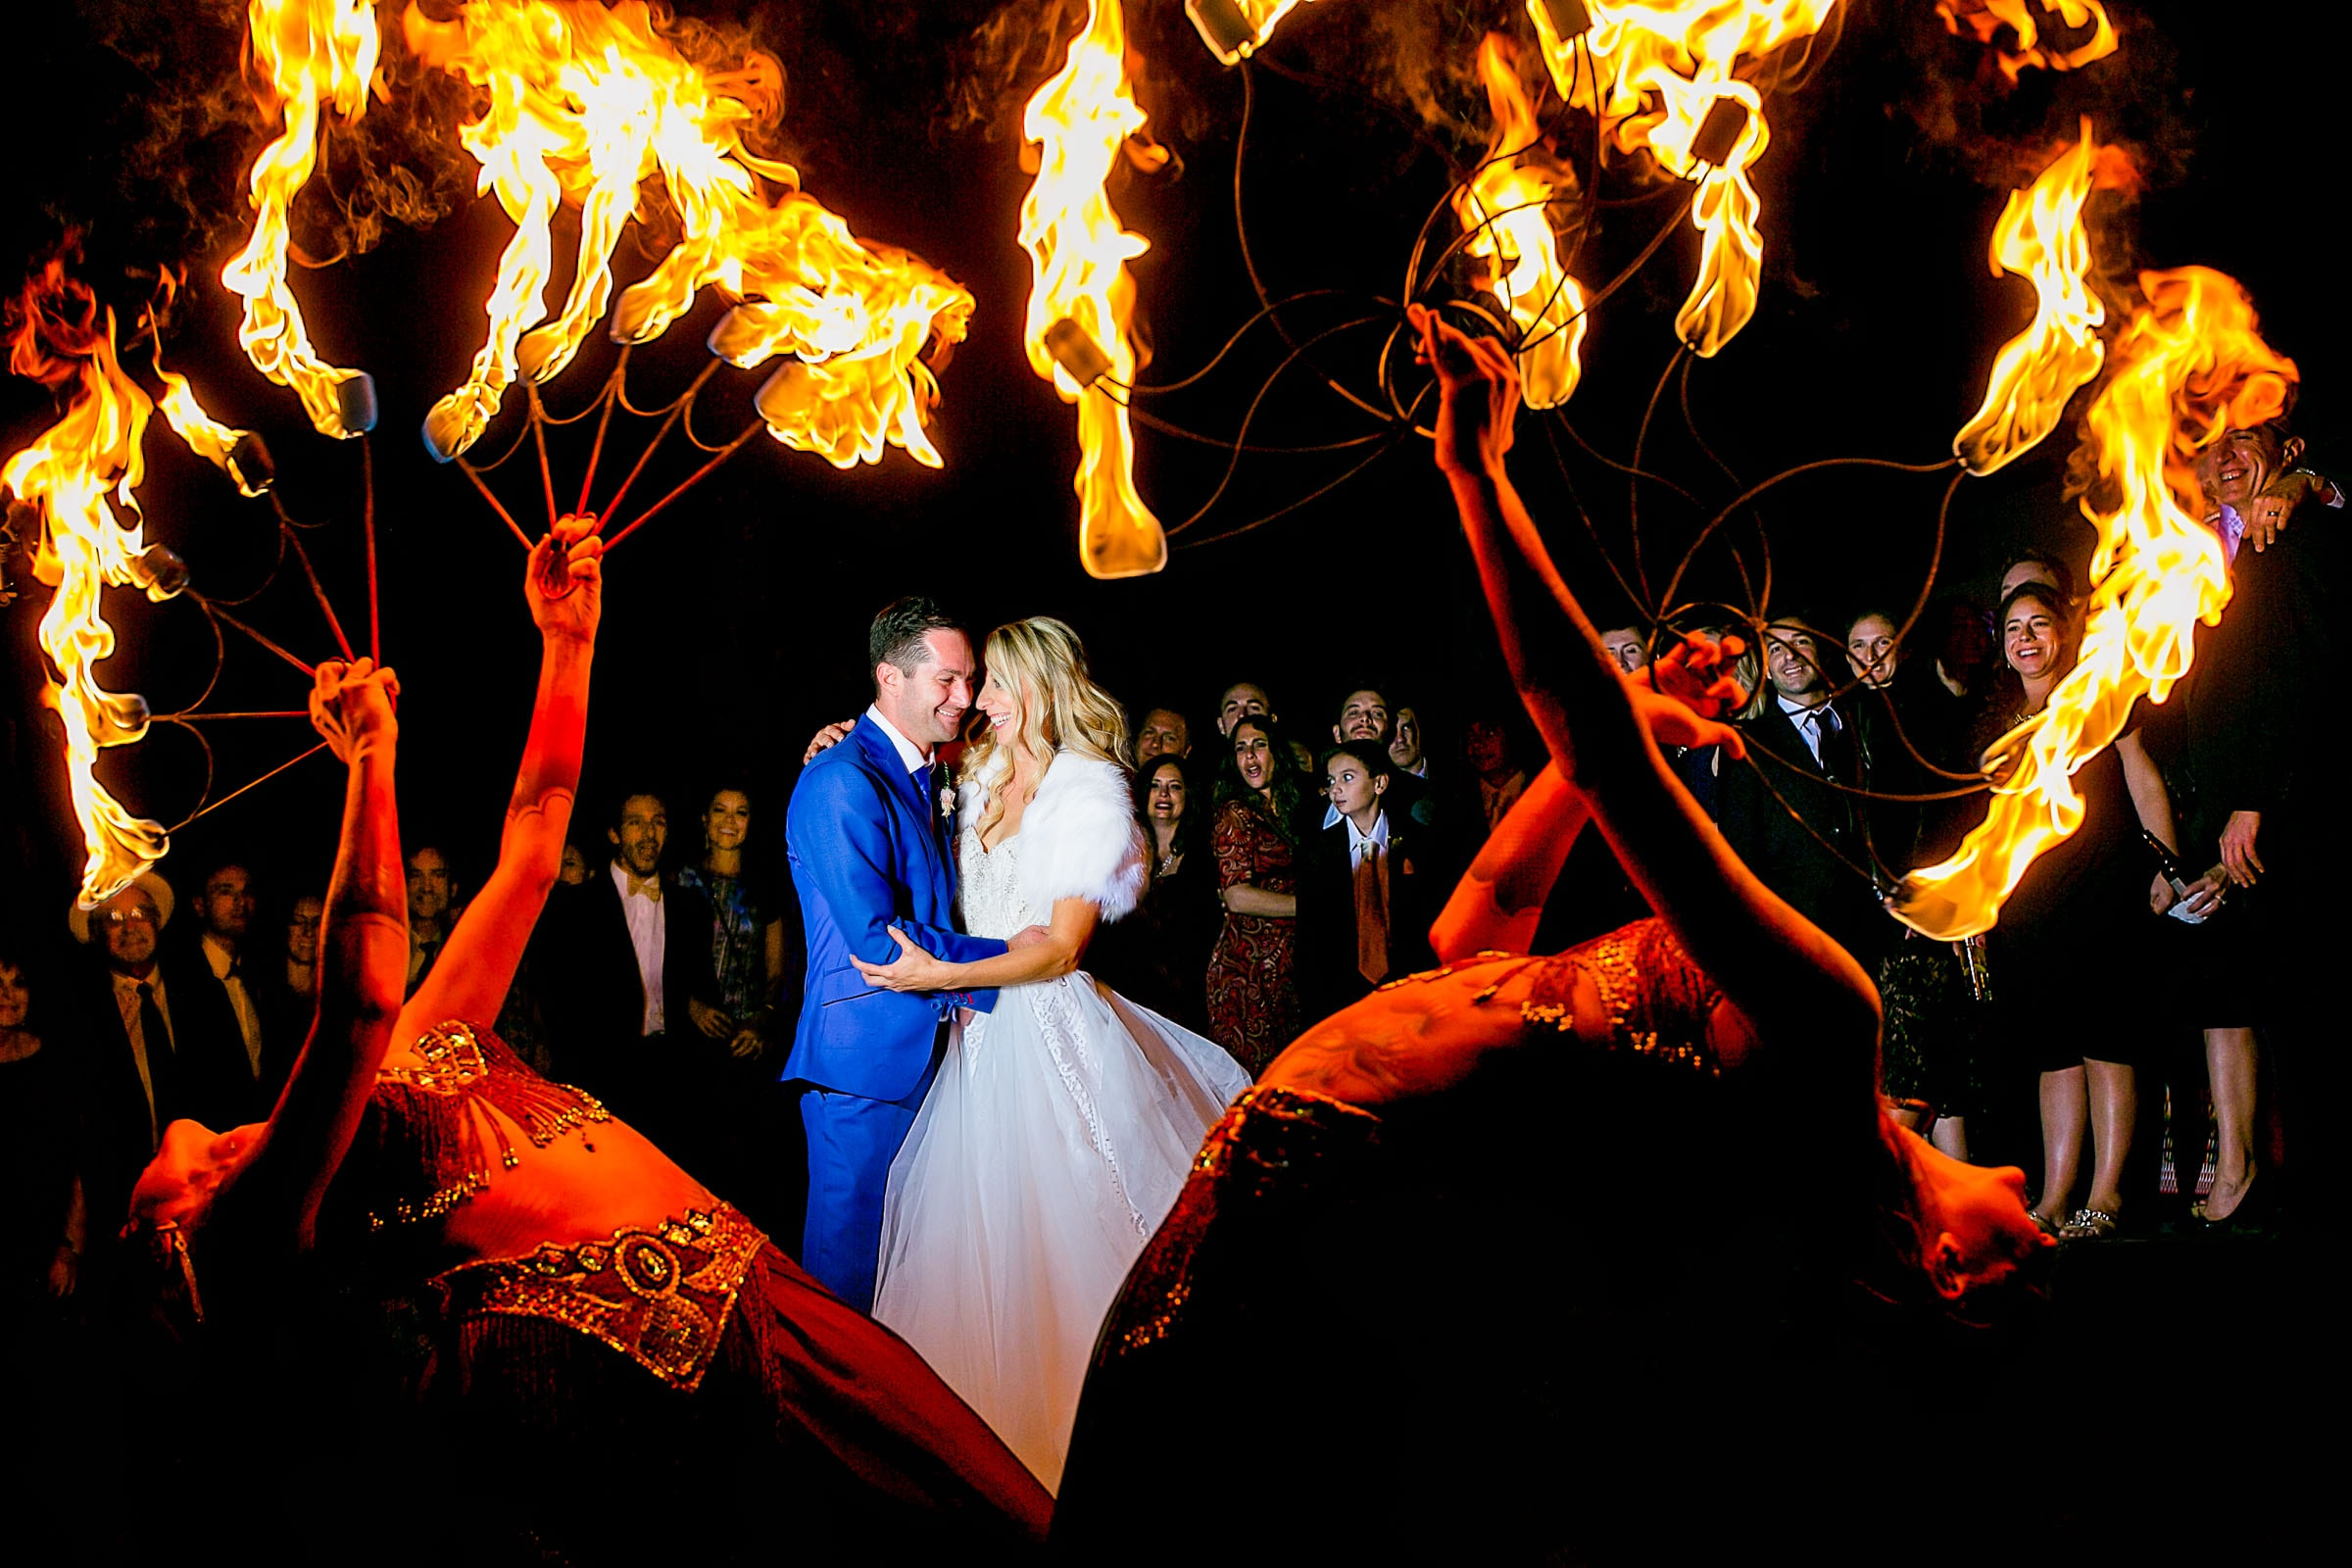 Creative portrait of bride and groom surrounded by flames thrown by circus performers during their Merv Griffin Estate Wedding in Palm Springs